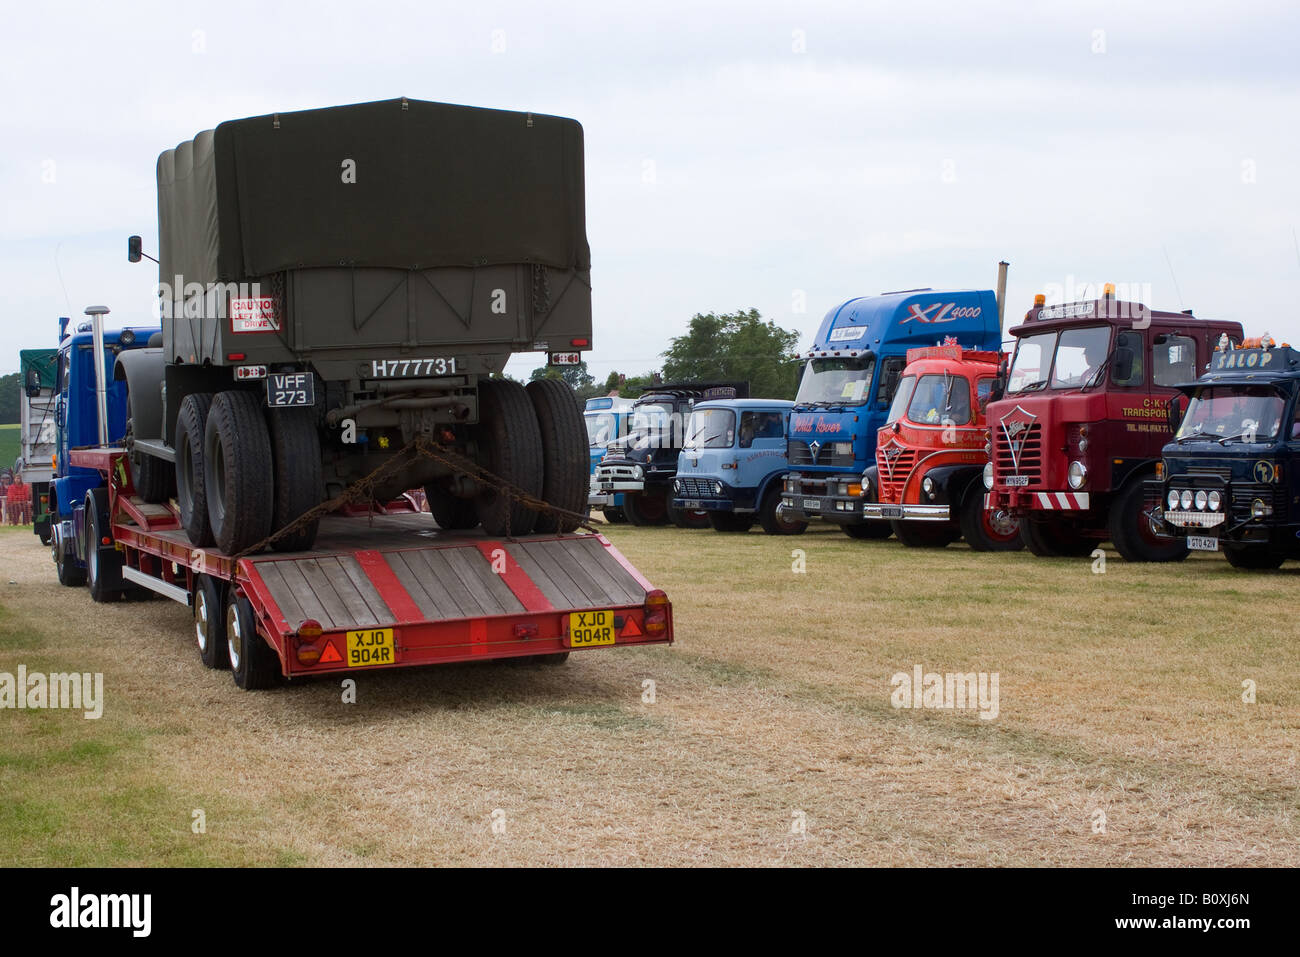 Various Old Articuated Tractor and Flatbed Trucks at Smallwood Vintage Rally Cheshire England United Kingdom UK - Stock Image